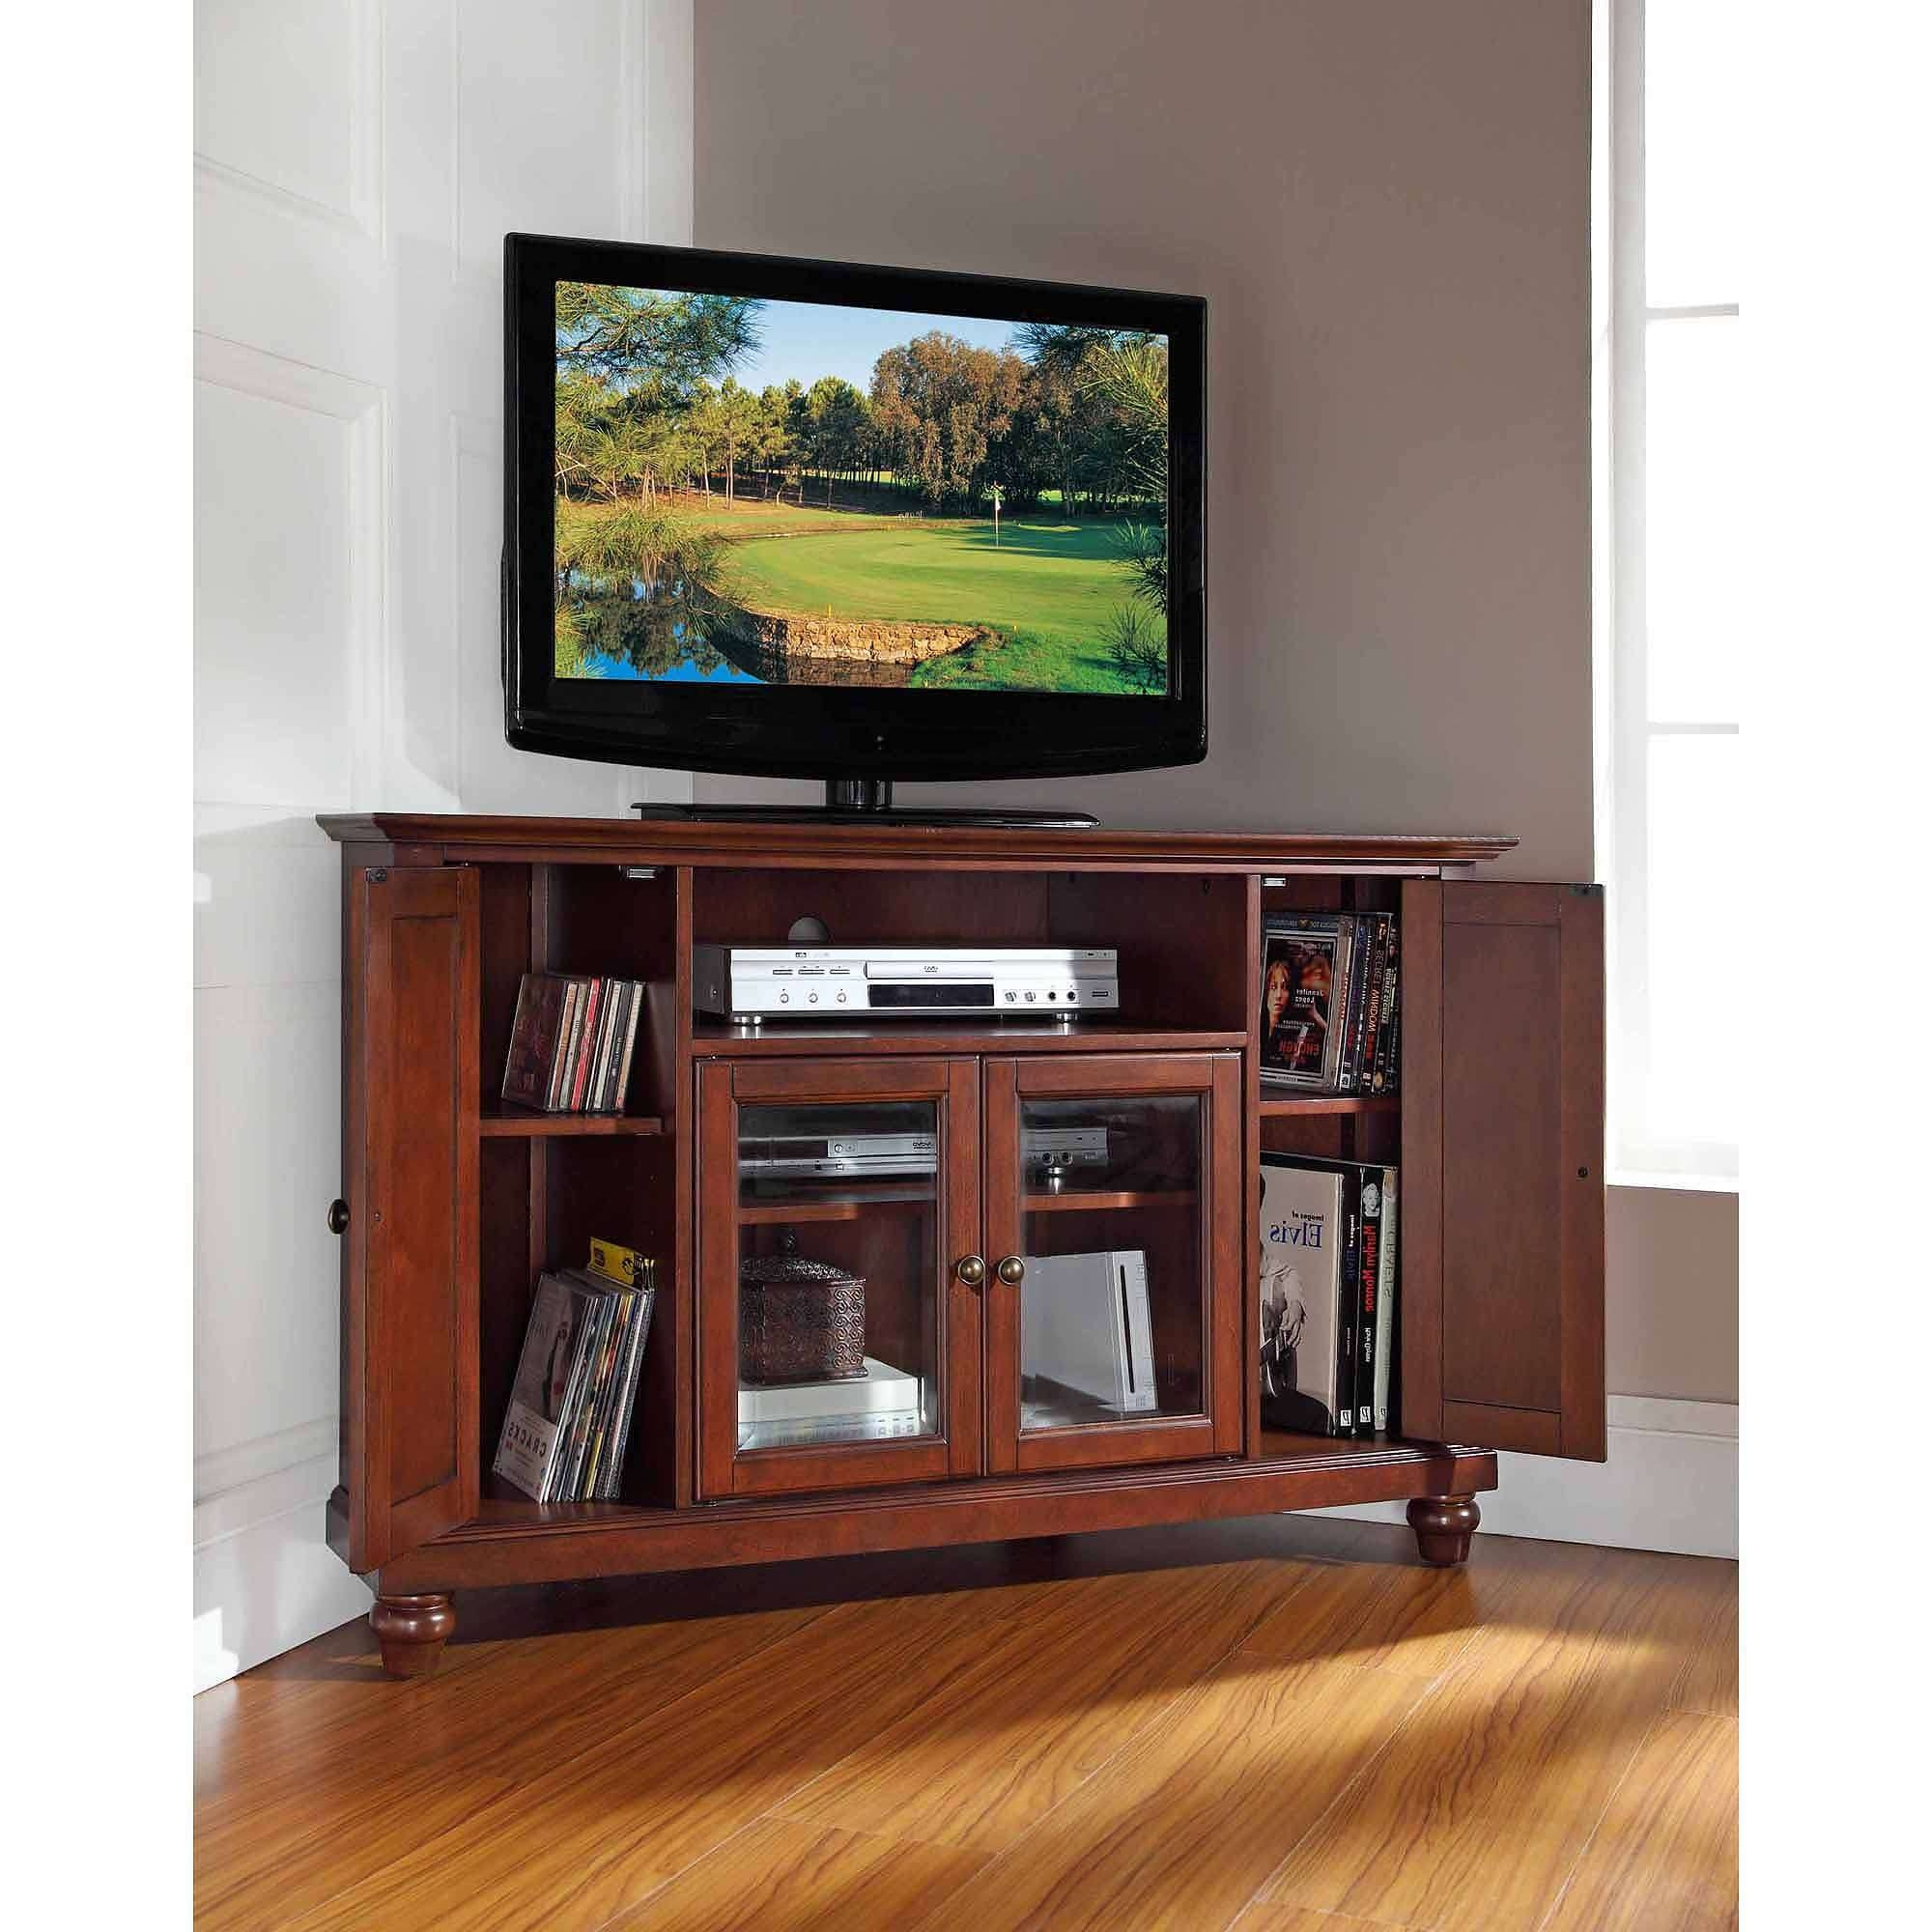 Tv : 41 Stunning 40 Inch Tv Stand Wood Photos Concept Stunning Throughout Real Wood Corner Tv Stands (View 15 of 15)